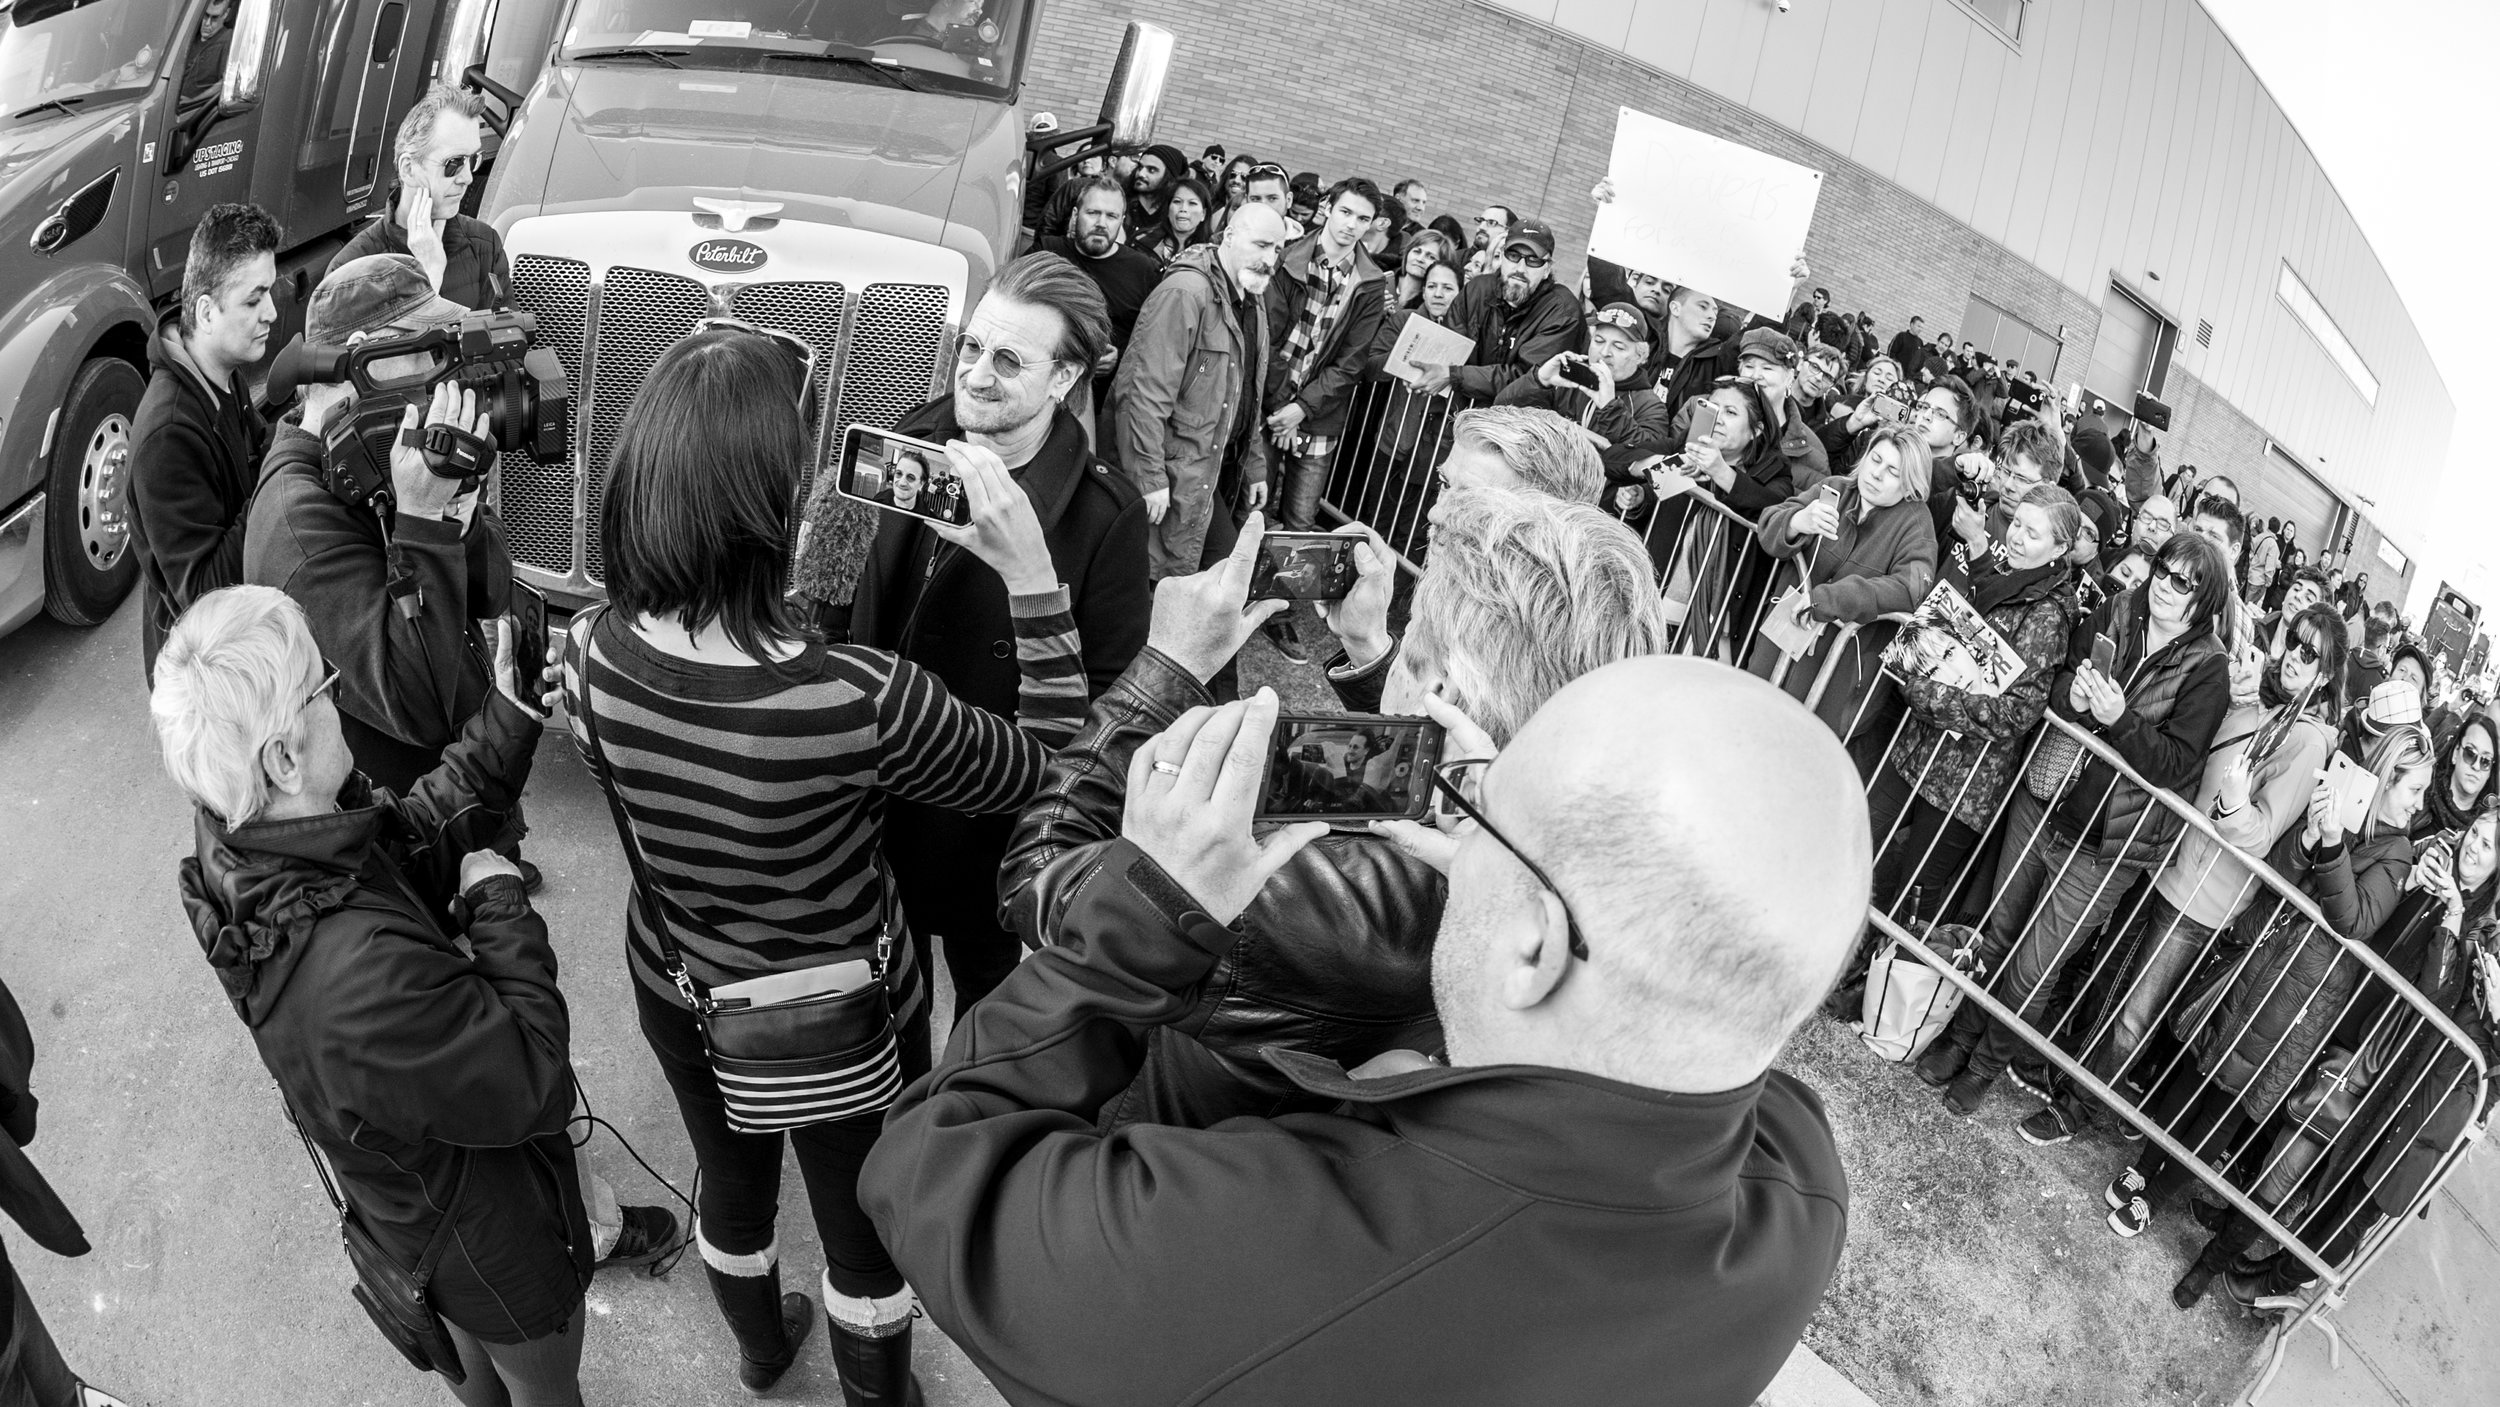 Interviewing Bono for Dream Out Loud April 21, 2018 in Laval, QC. Photo Credit: Martin Alarie